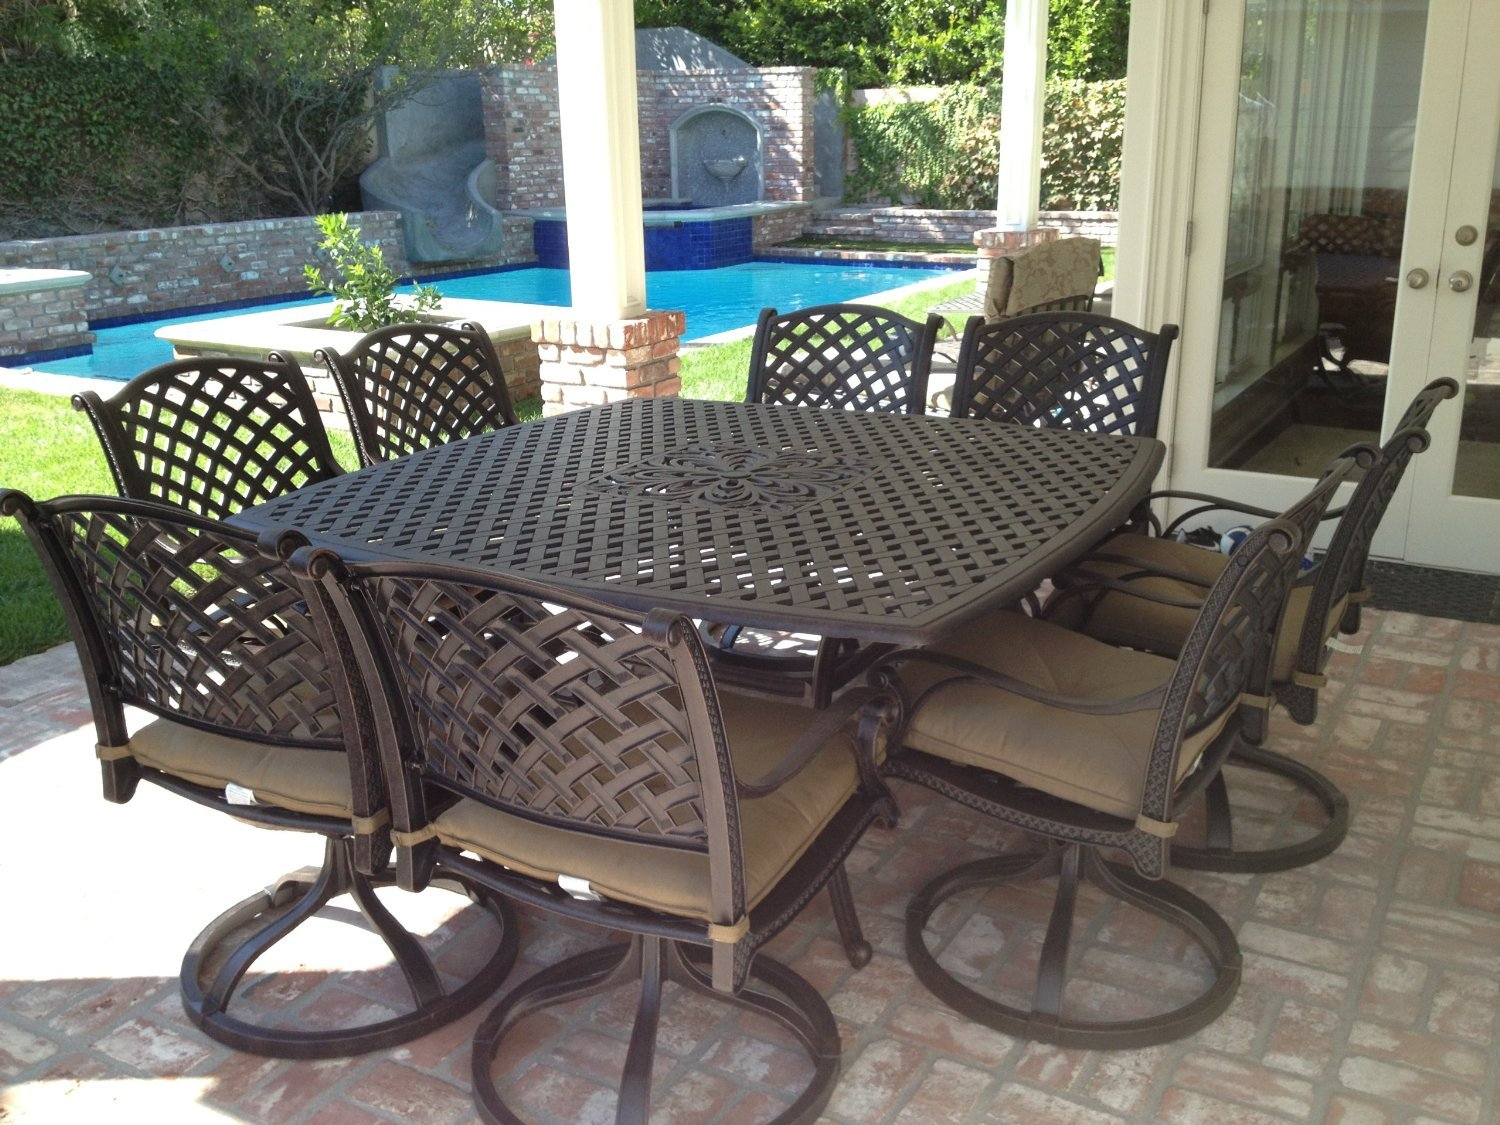 Amazon com nassau cast aluminum powder coated 9pc outdoor patio dining set with 64x64 square table antique bronze garden outdoor